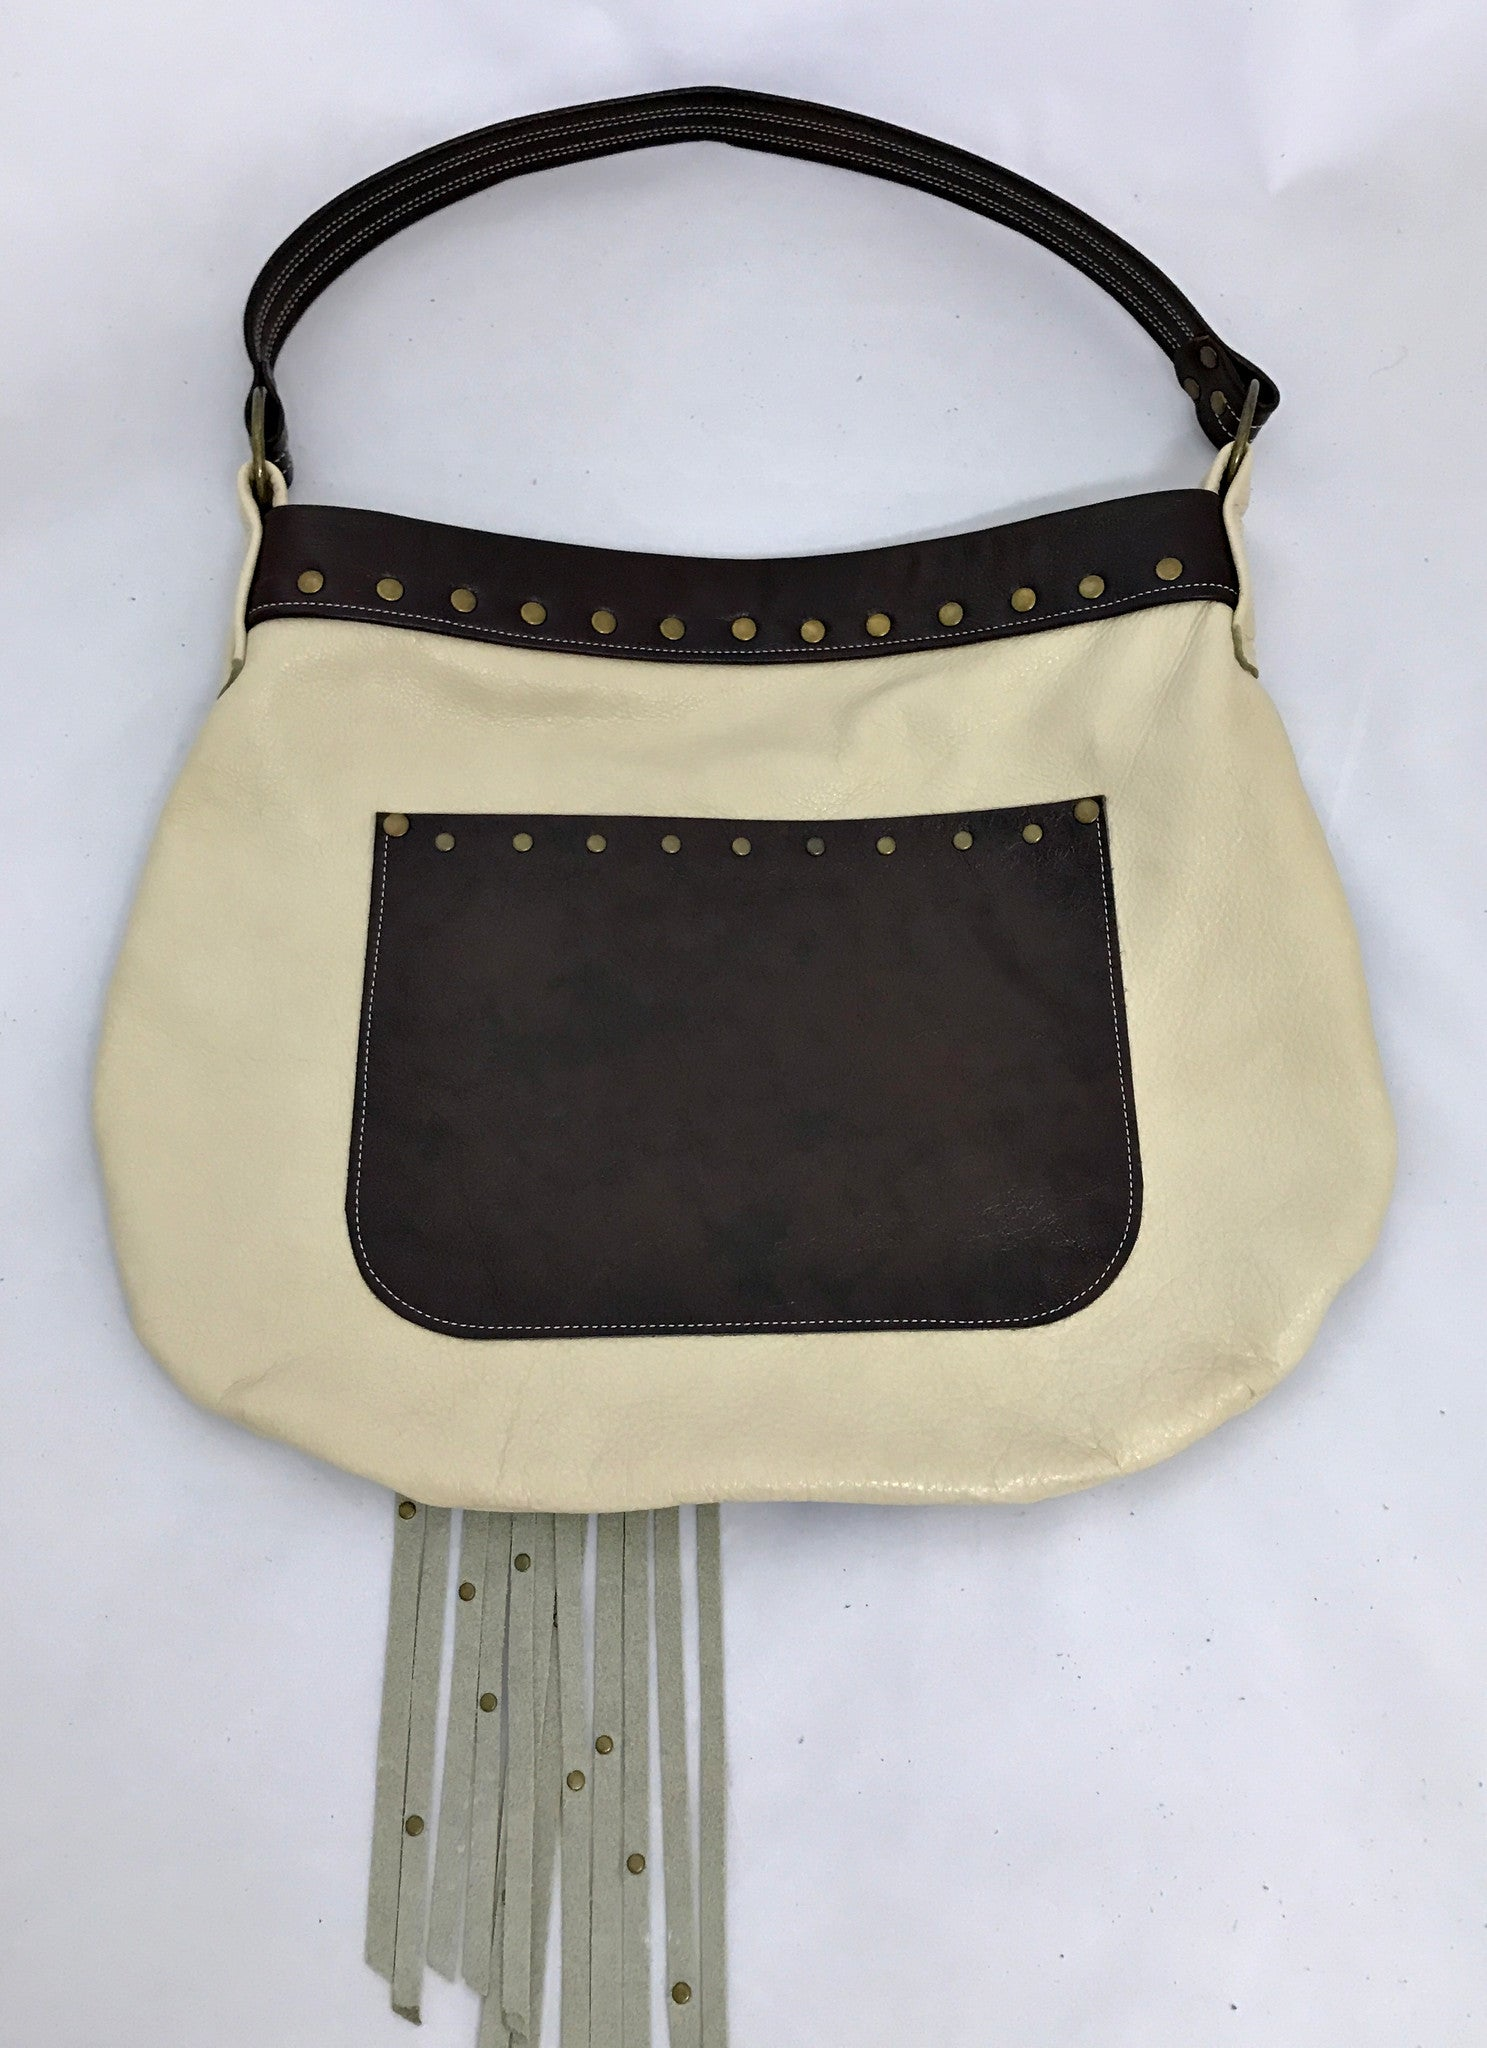 Off-White/Brown w/Fringe Medium Shoulder Bag